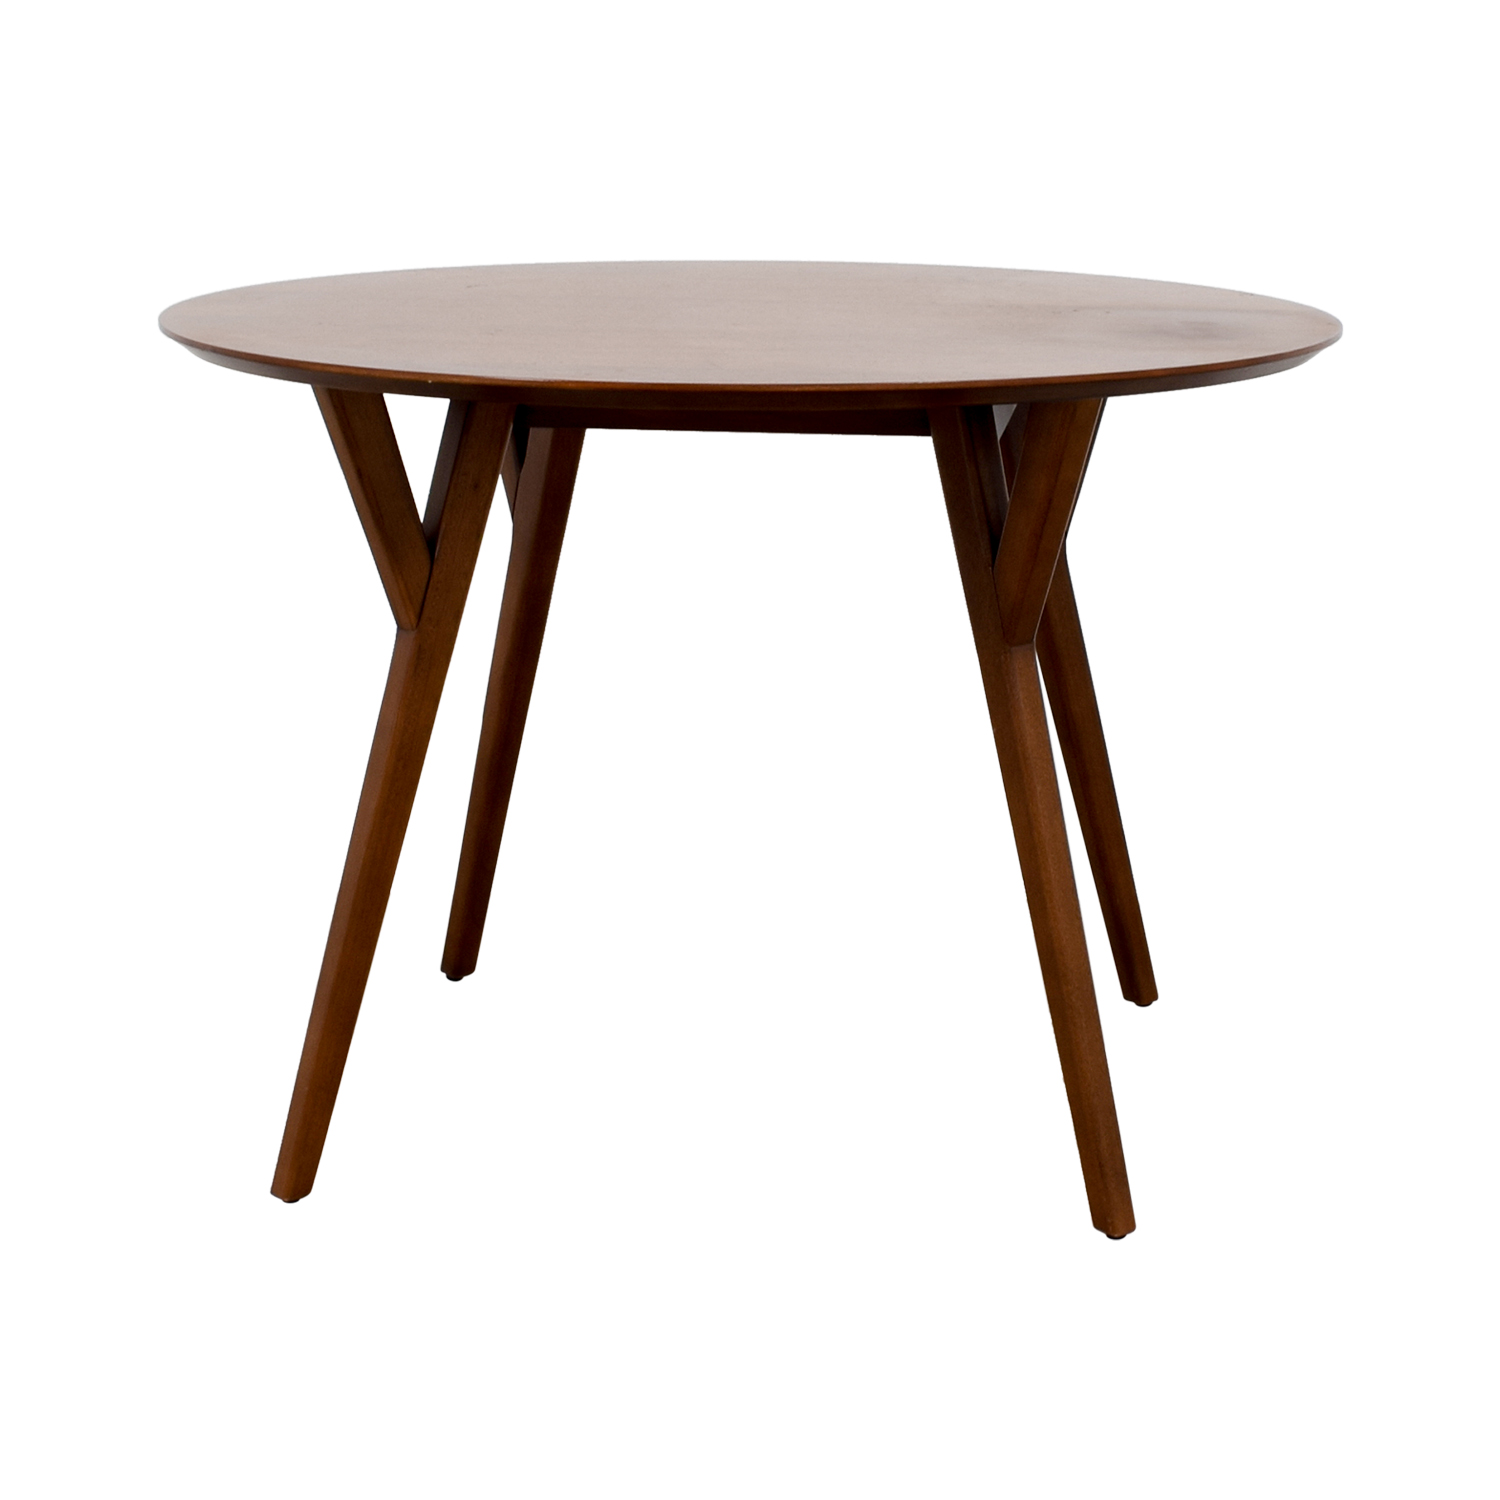 West Elm West Elm Round Wood Dining Table dimensions